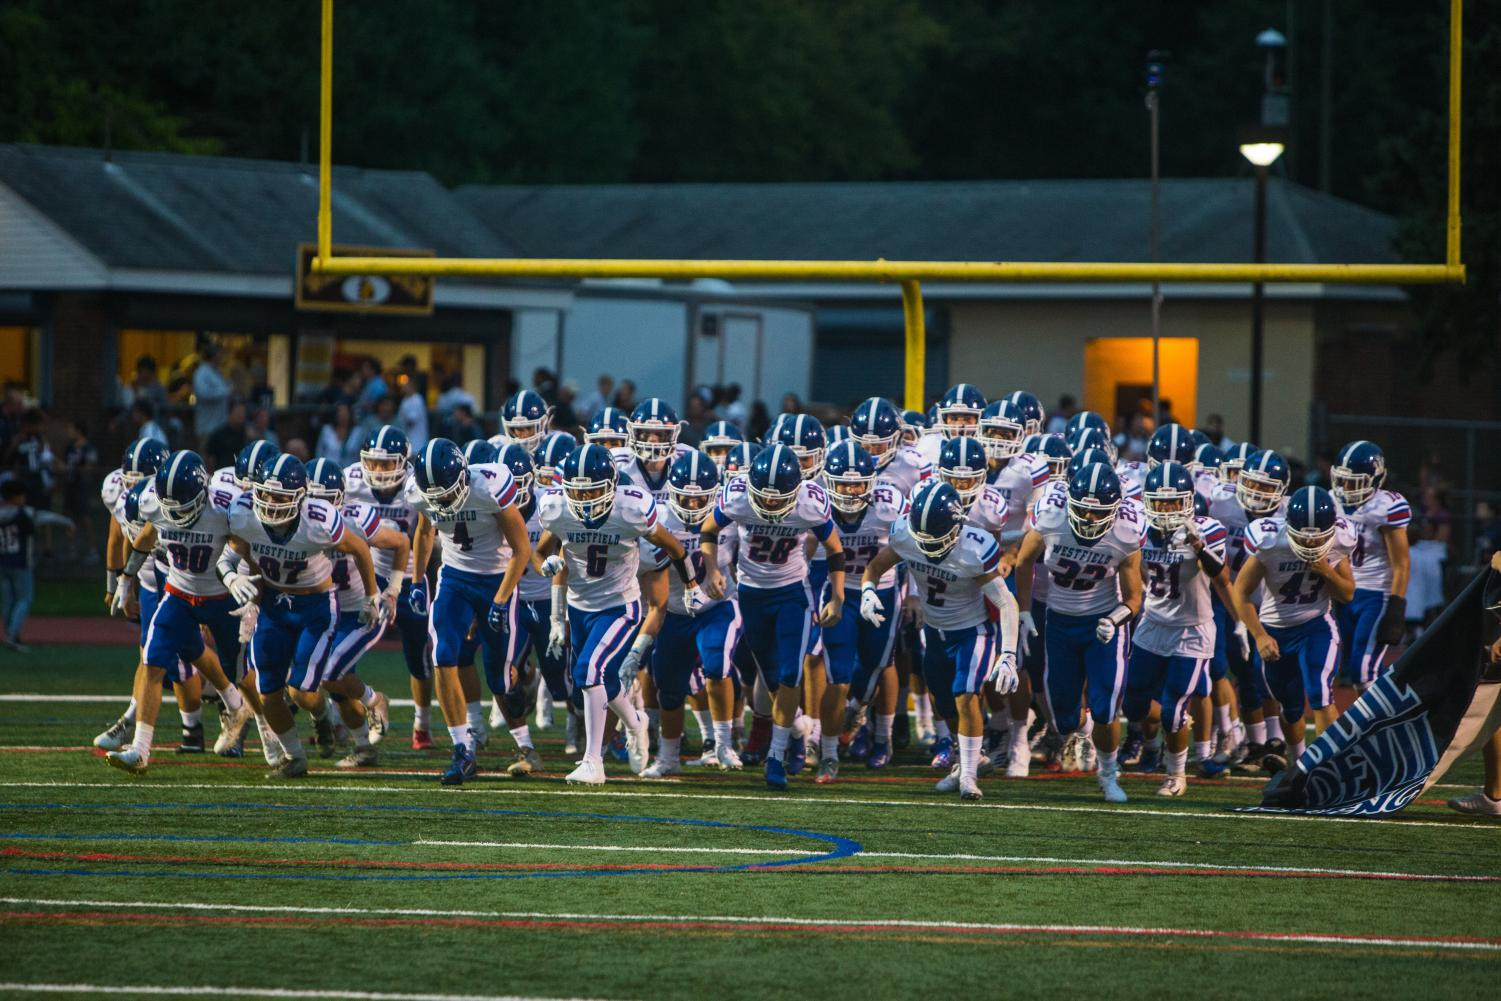 The football team takes the field prior to its game against Watchung Hills on Sept. 14.